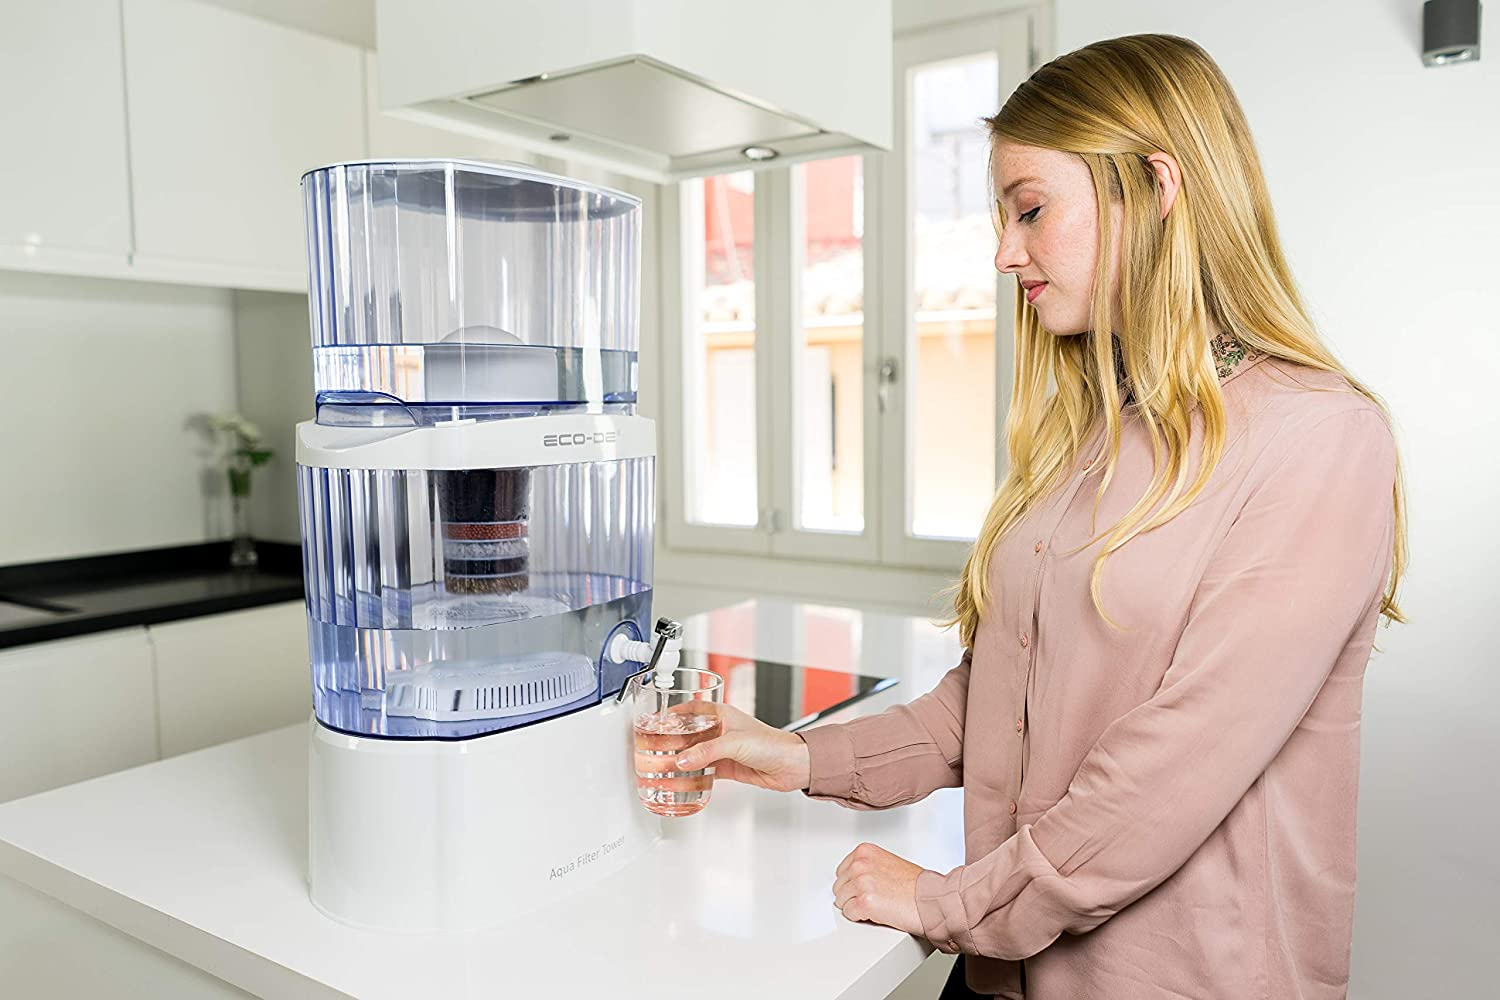 Aqua Filter Tower - Water Fountain with ECO-DE® filter and Purifier CX3150